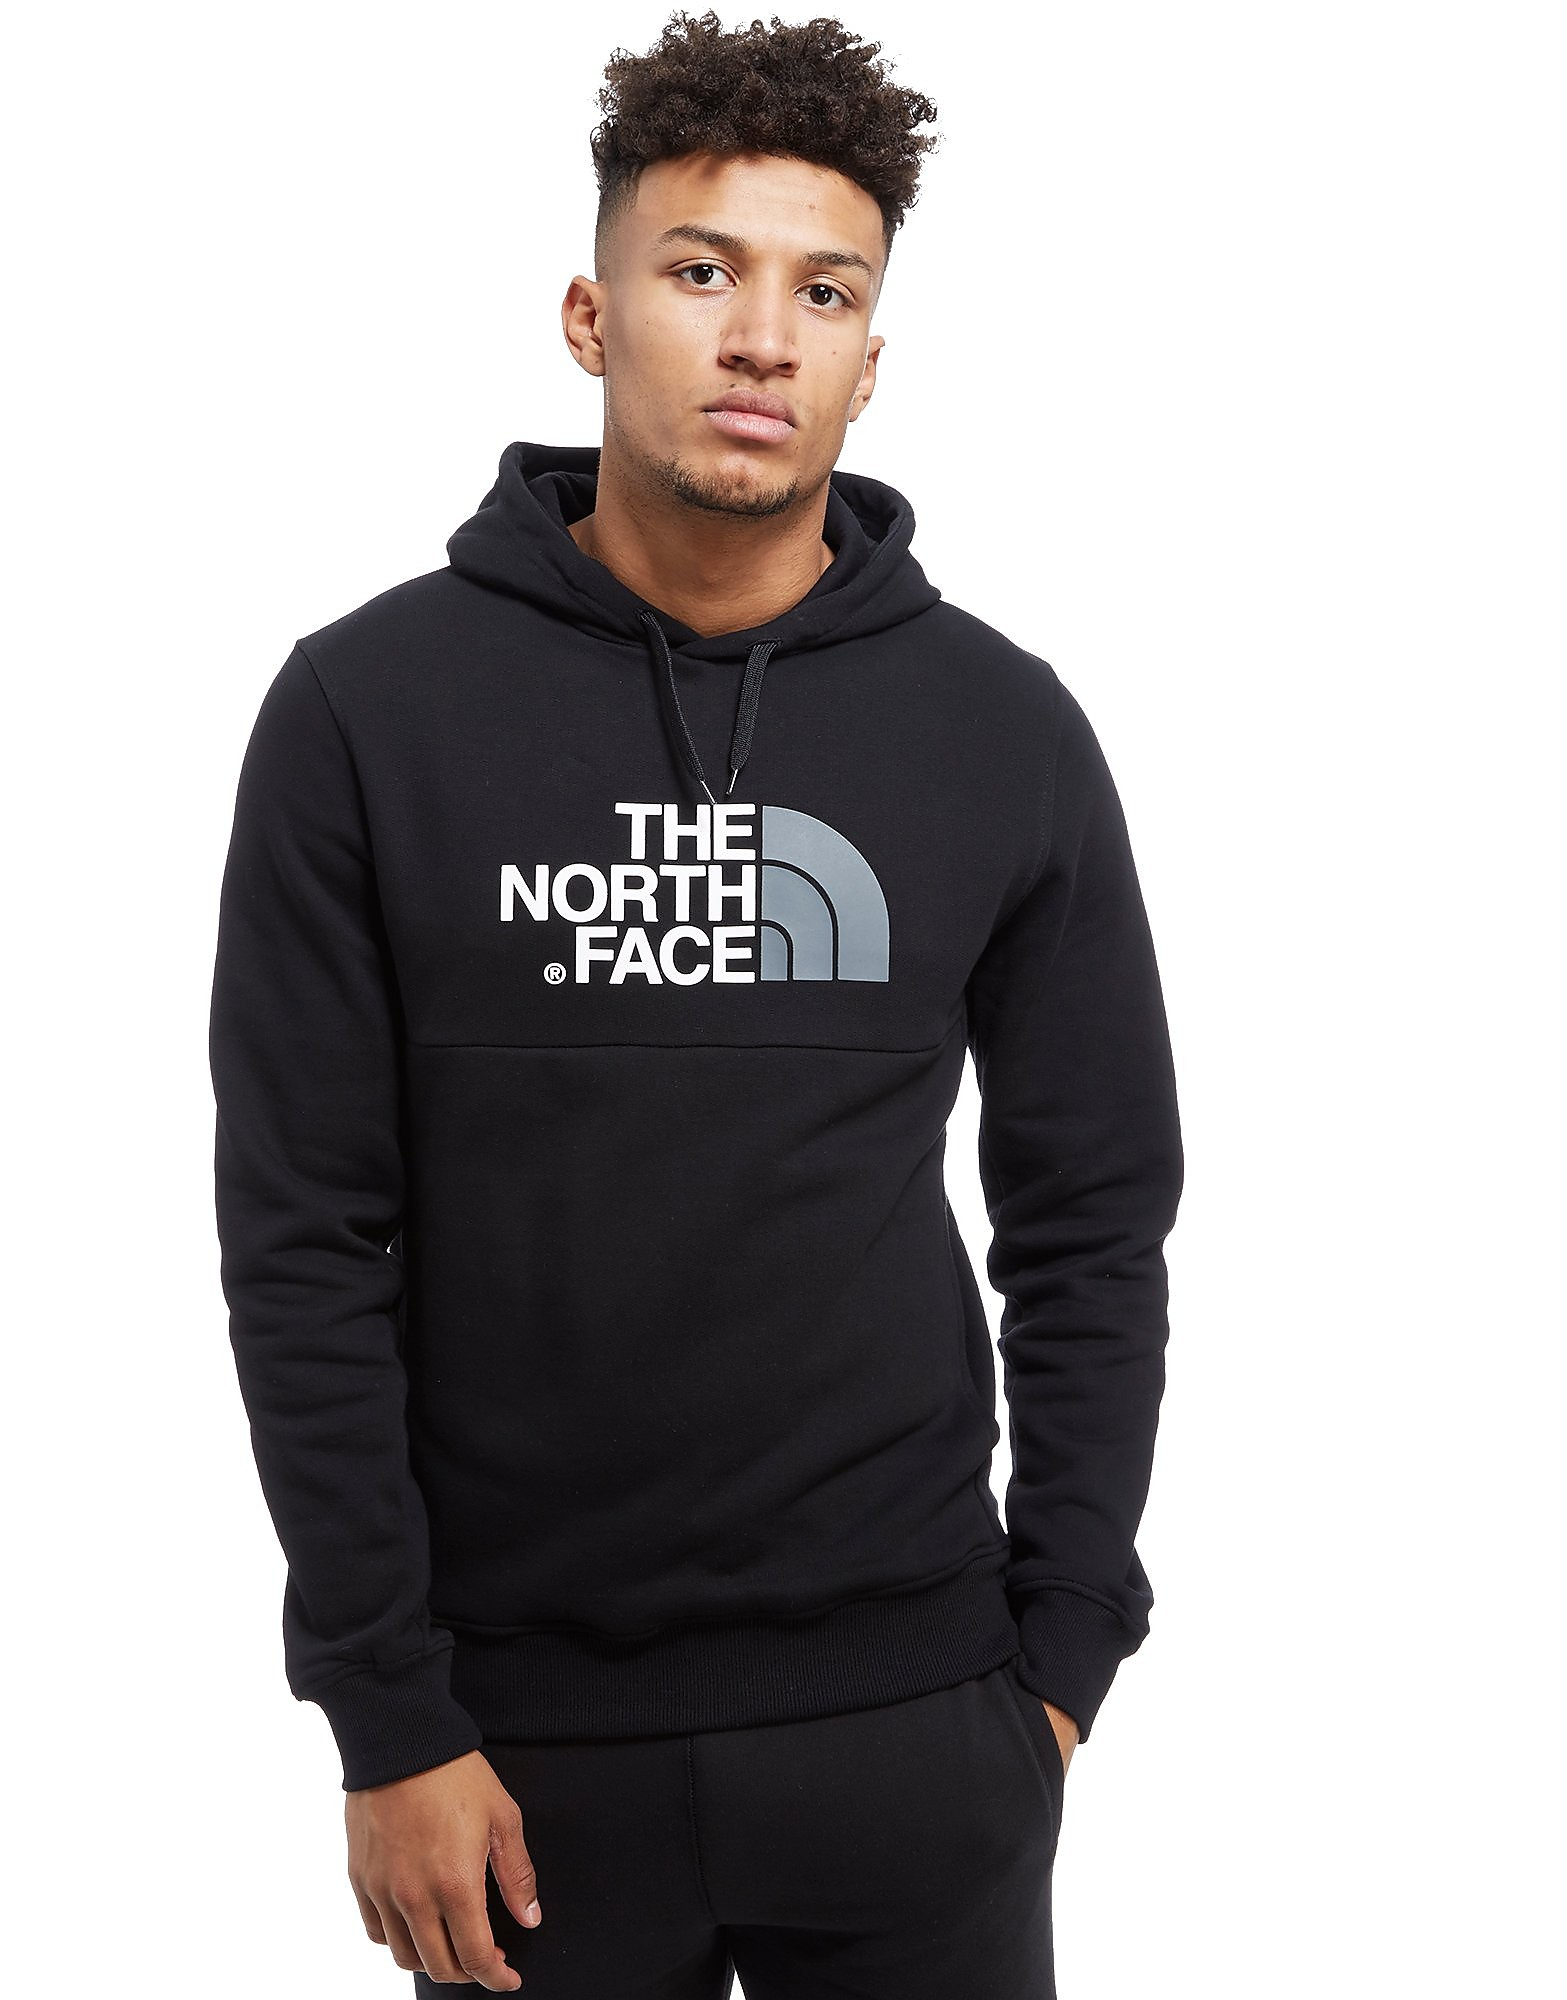 The North Face 100% Baumwolle